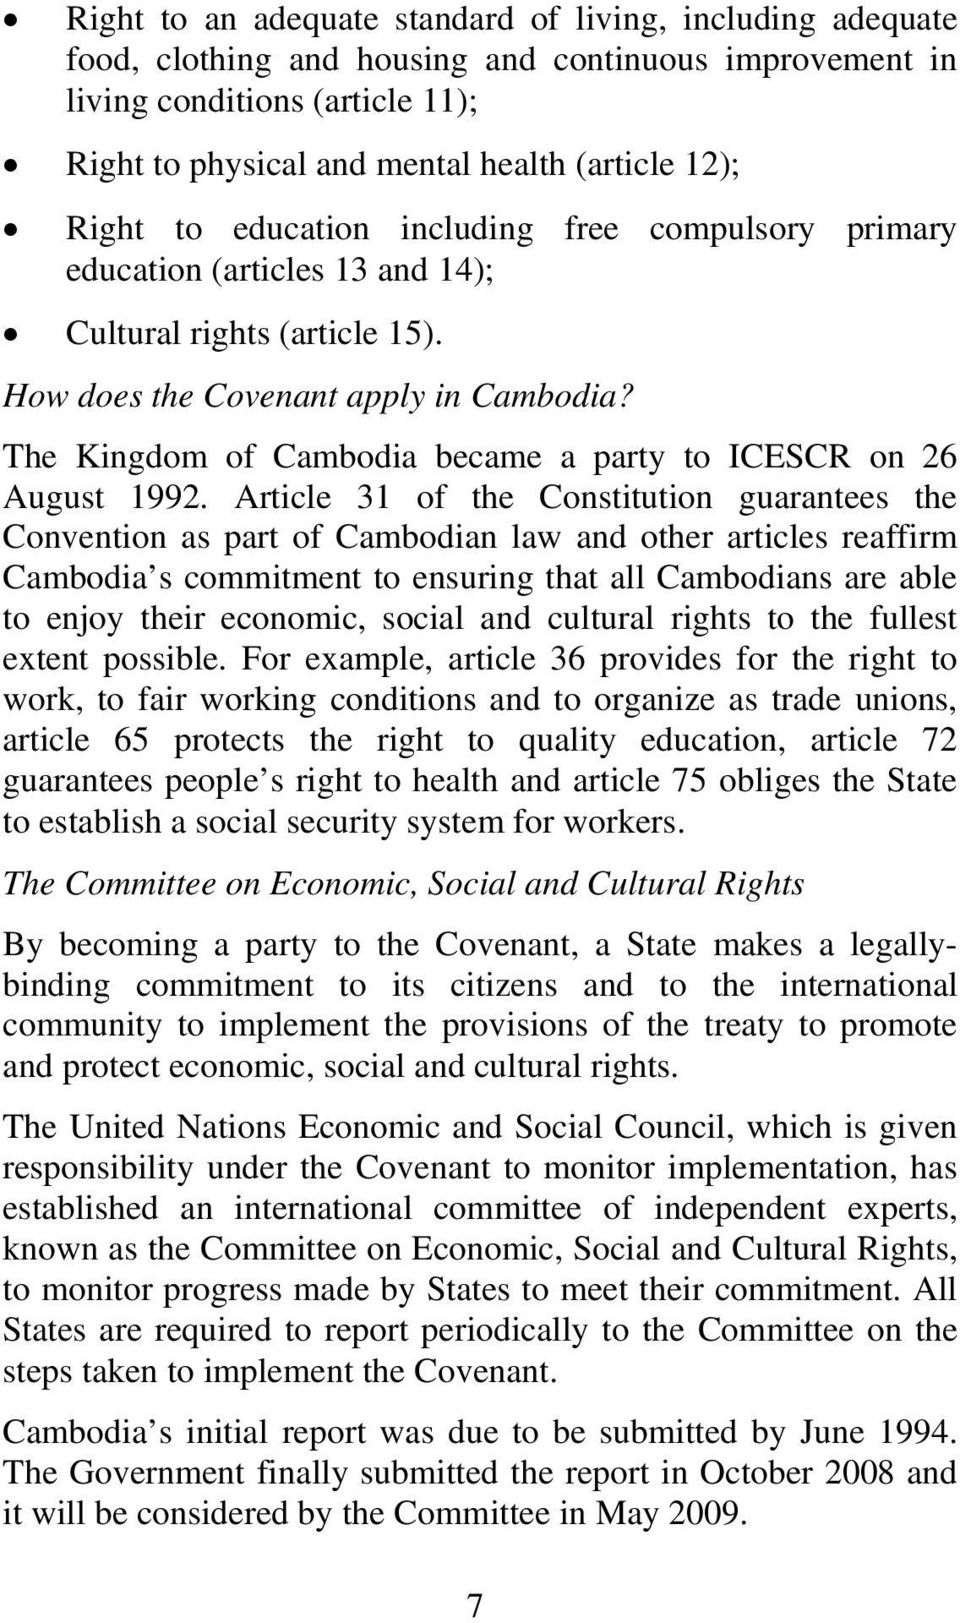 The Kingdom of Cambodia became a party to ICESCR on 26 August 1992.